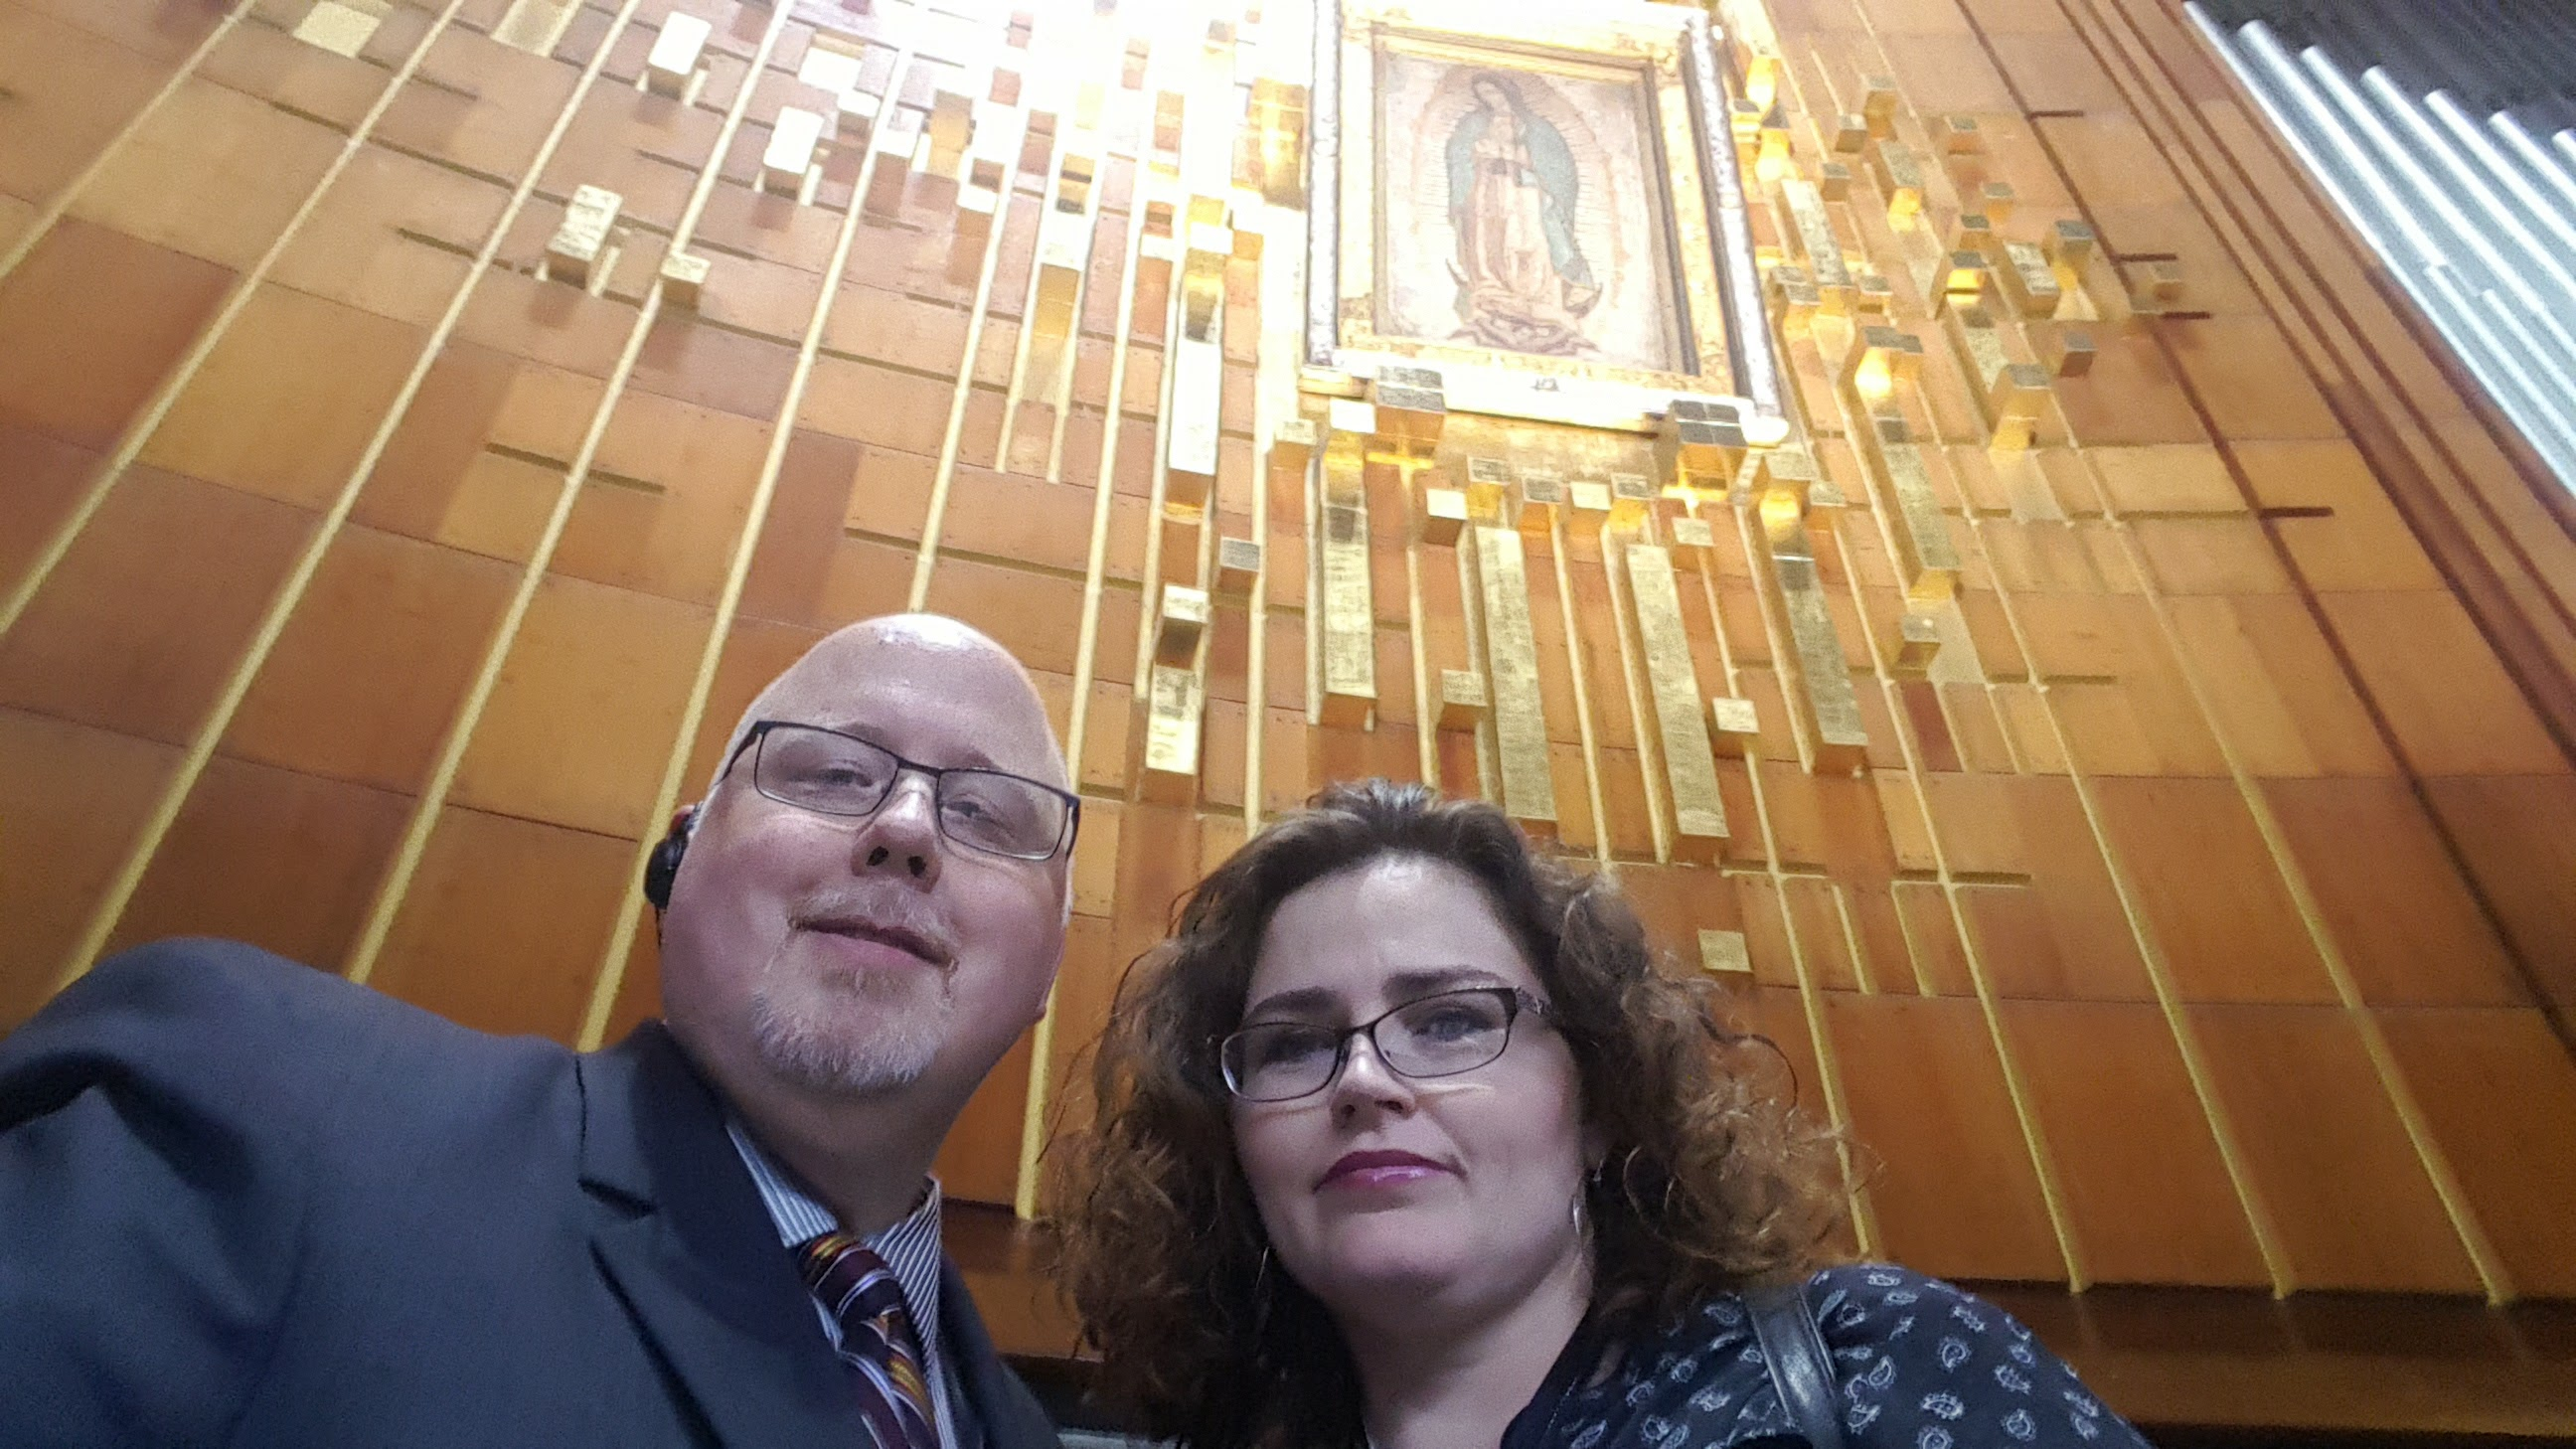 Troy and Maria visit the Basilica of Our Lady of Guadalupe